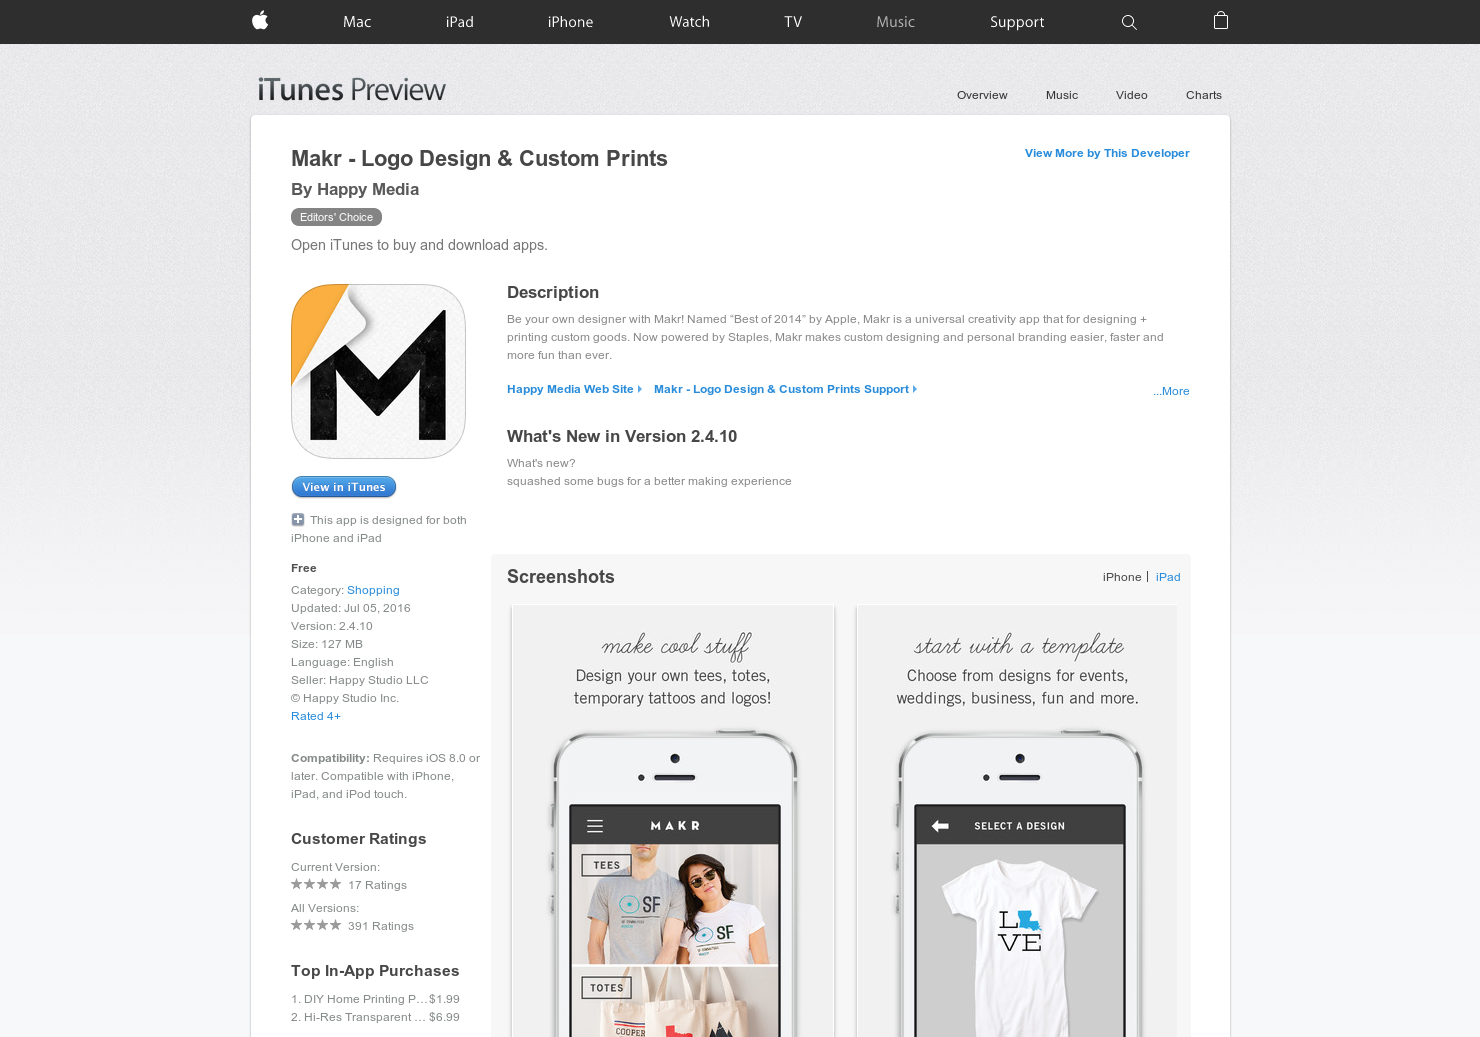 Makr Marketplace + iPhone - An app for designing + printing